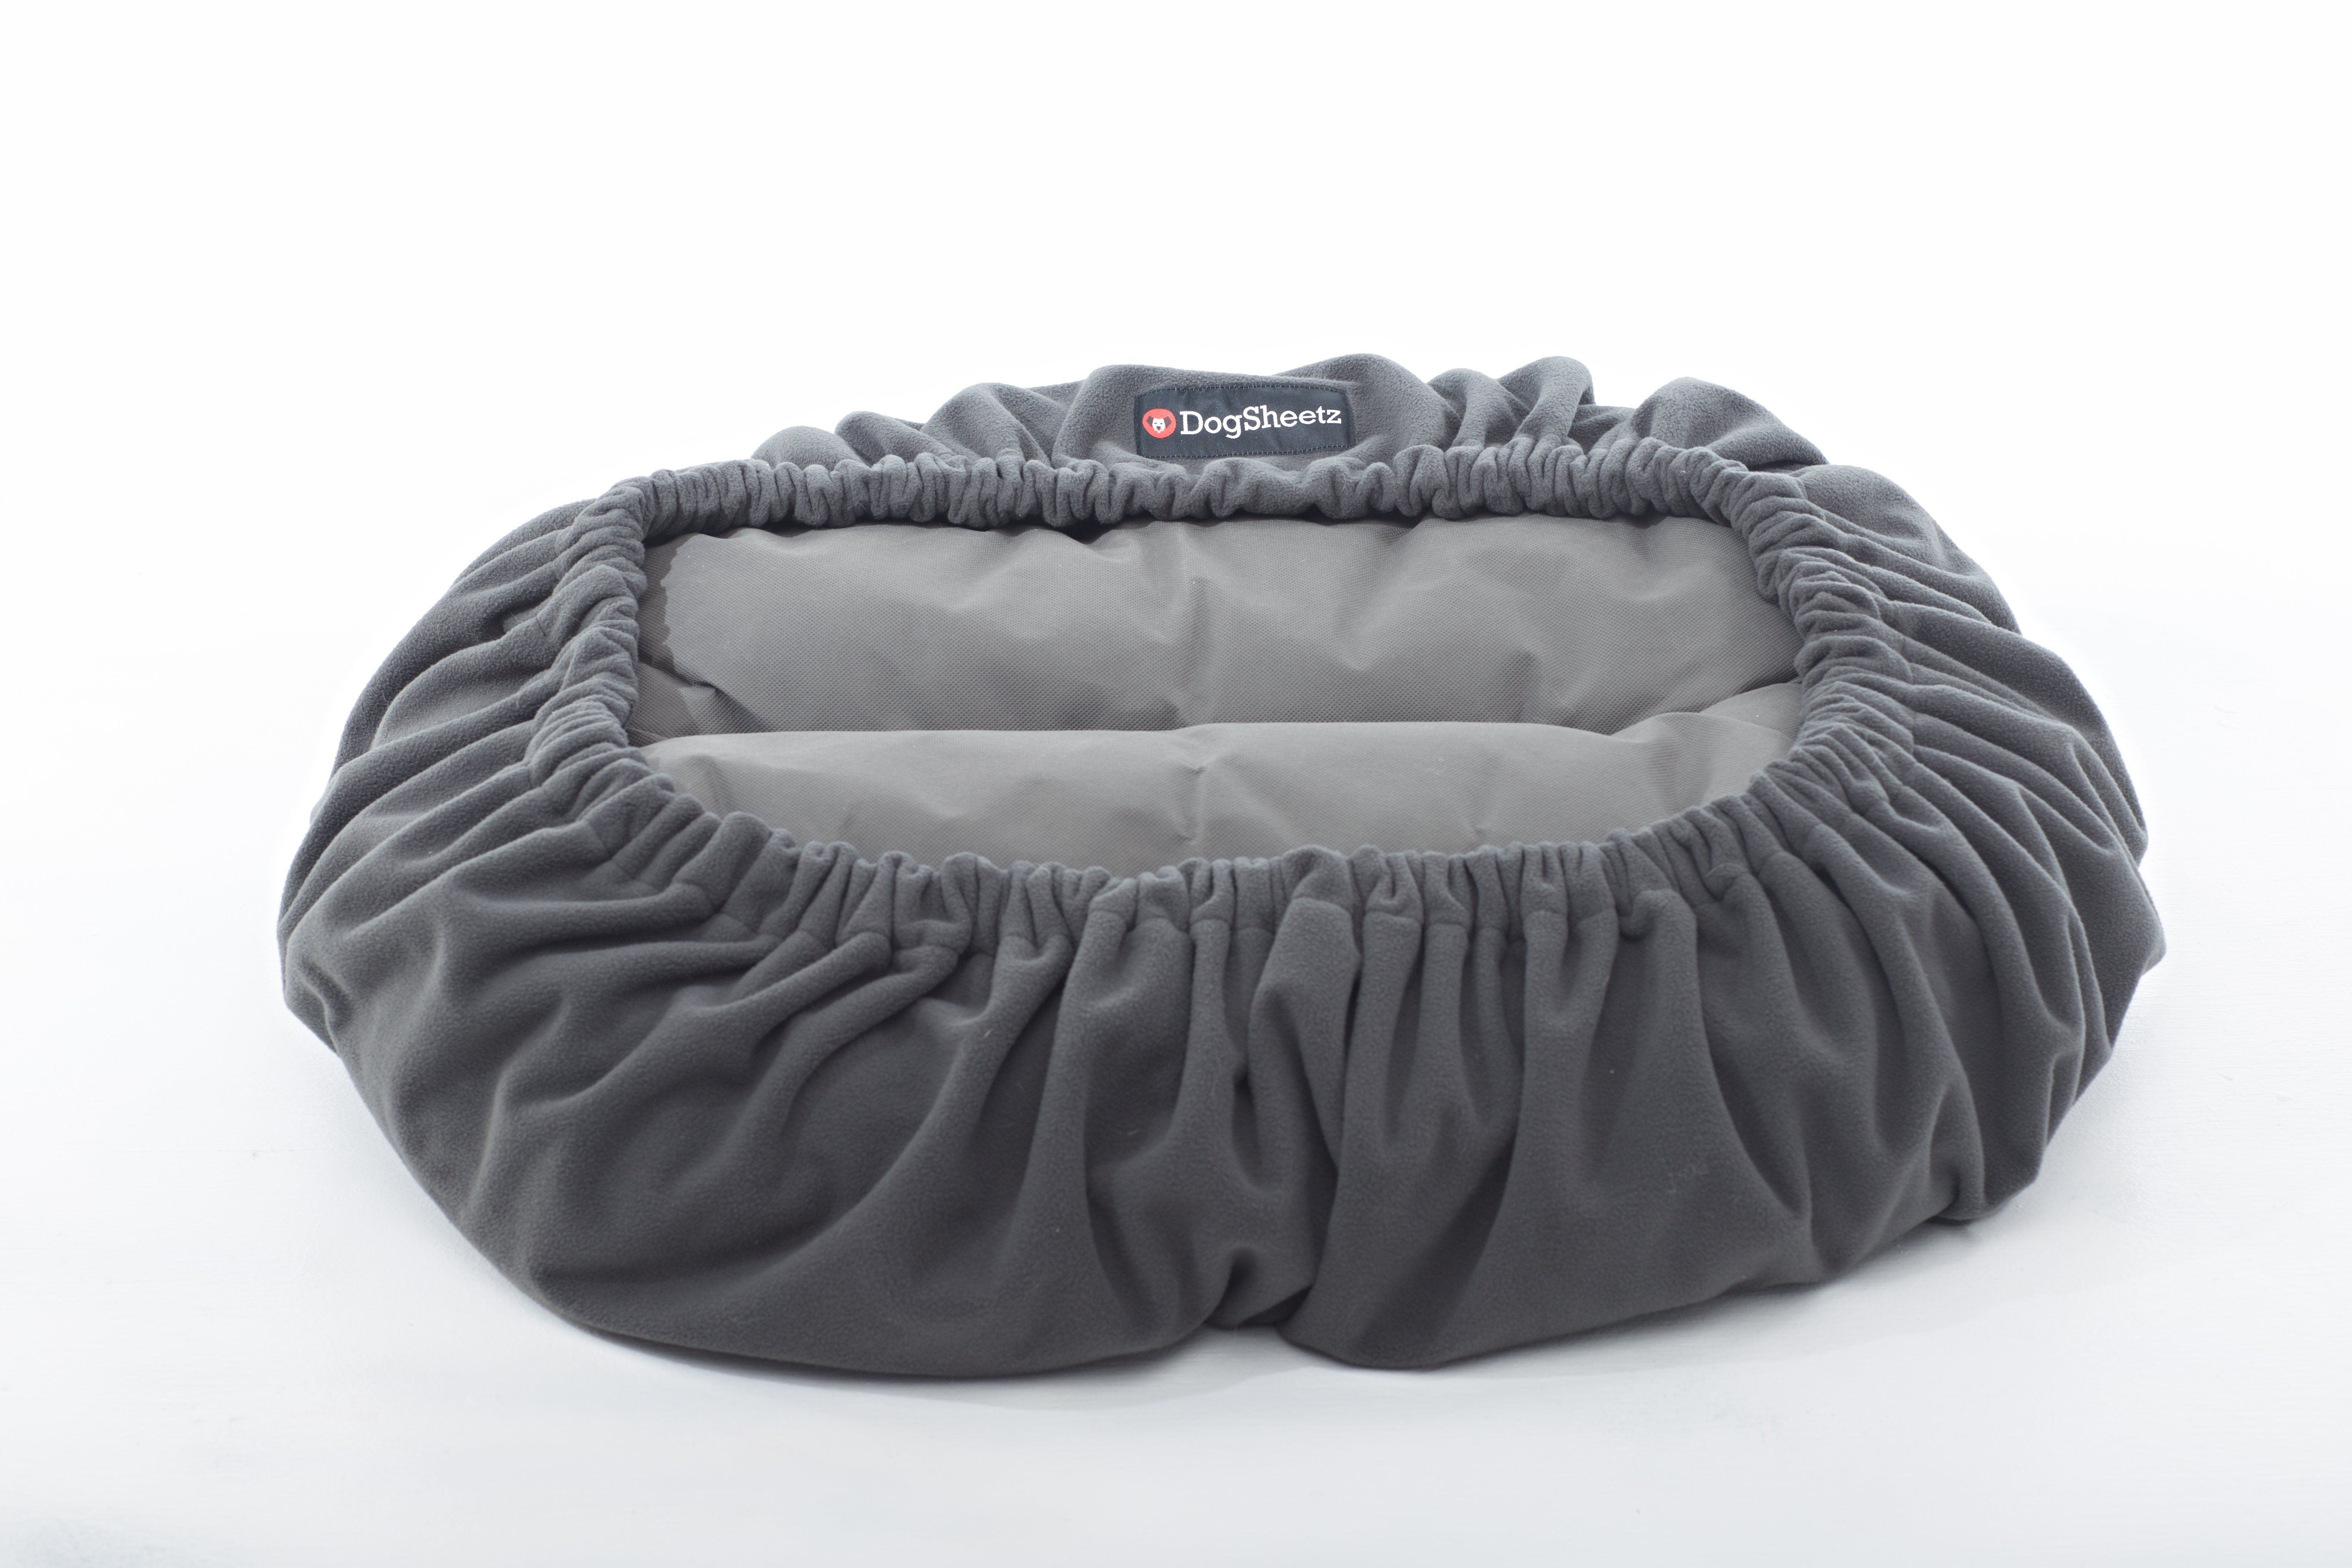 Dogsheetz waterproof dog bed cover dog bed bed covers